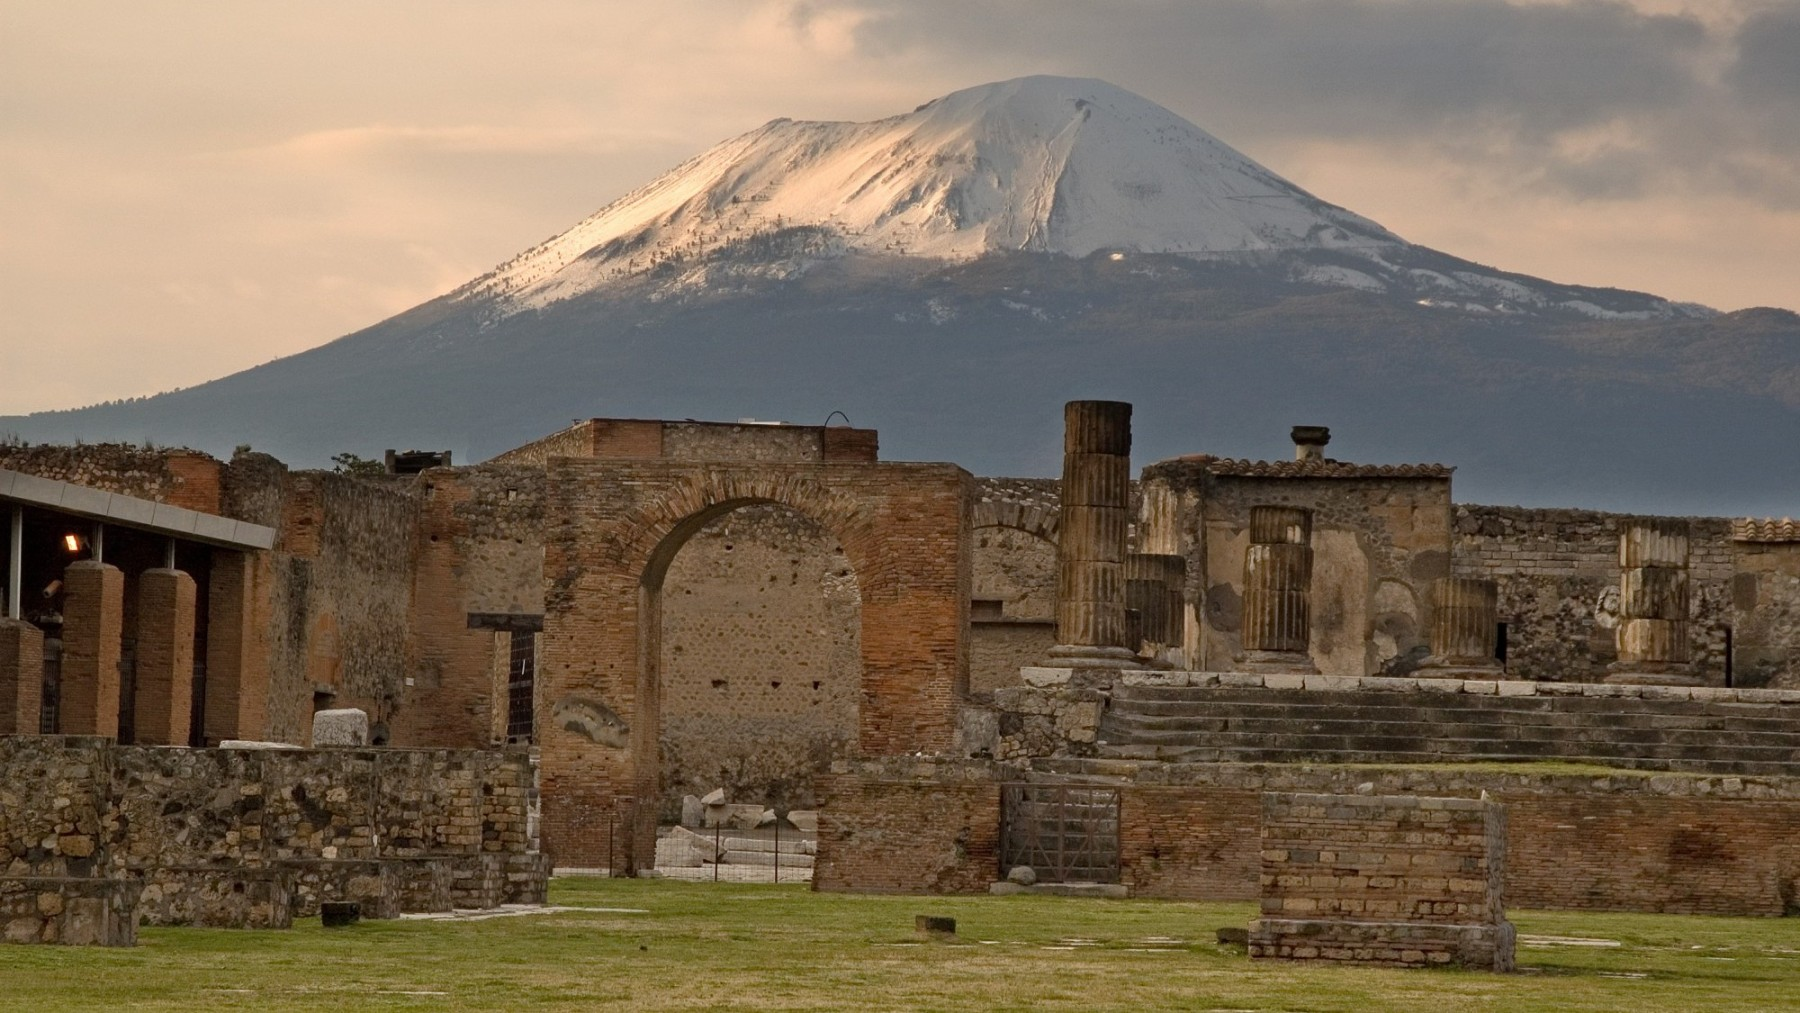 The sun begins to set on the snow capped Mount Vesuvius still overlooking Temple of Jupiter standing in the forum of Pompeii. (DHuss/Creative RF/Getty Images)